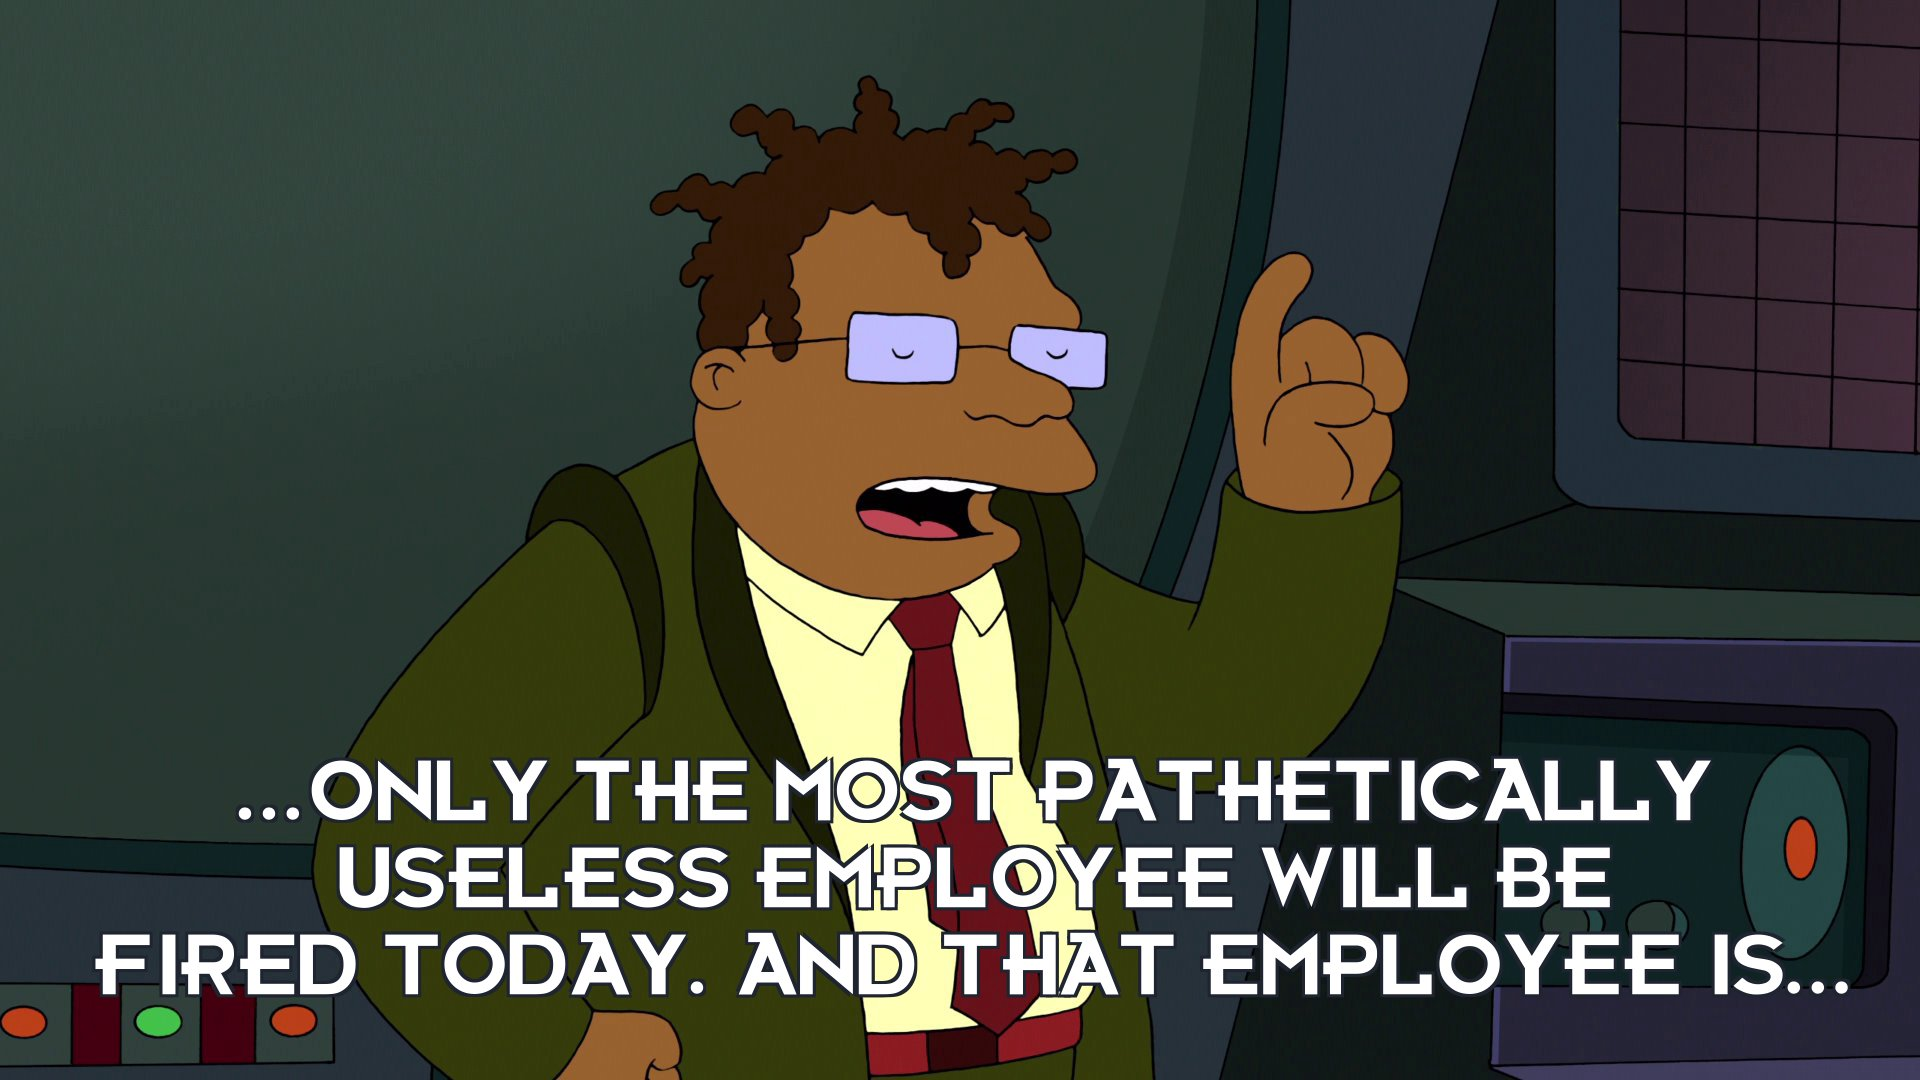 Hermes Conrad: ...only the most pathetically useless employee will be fired today. And that employee is...